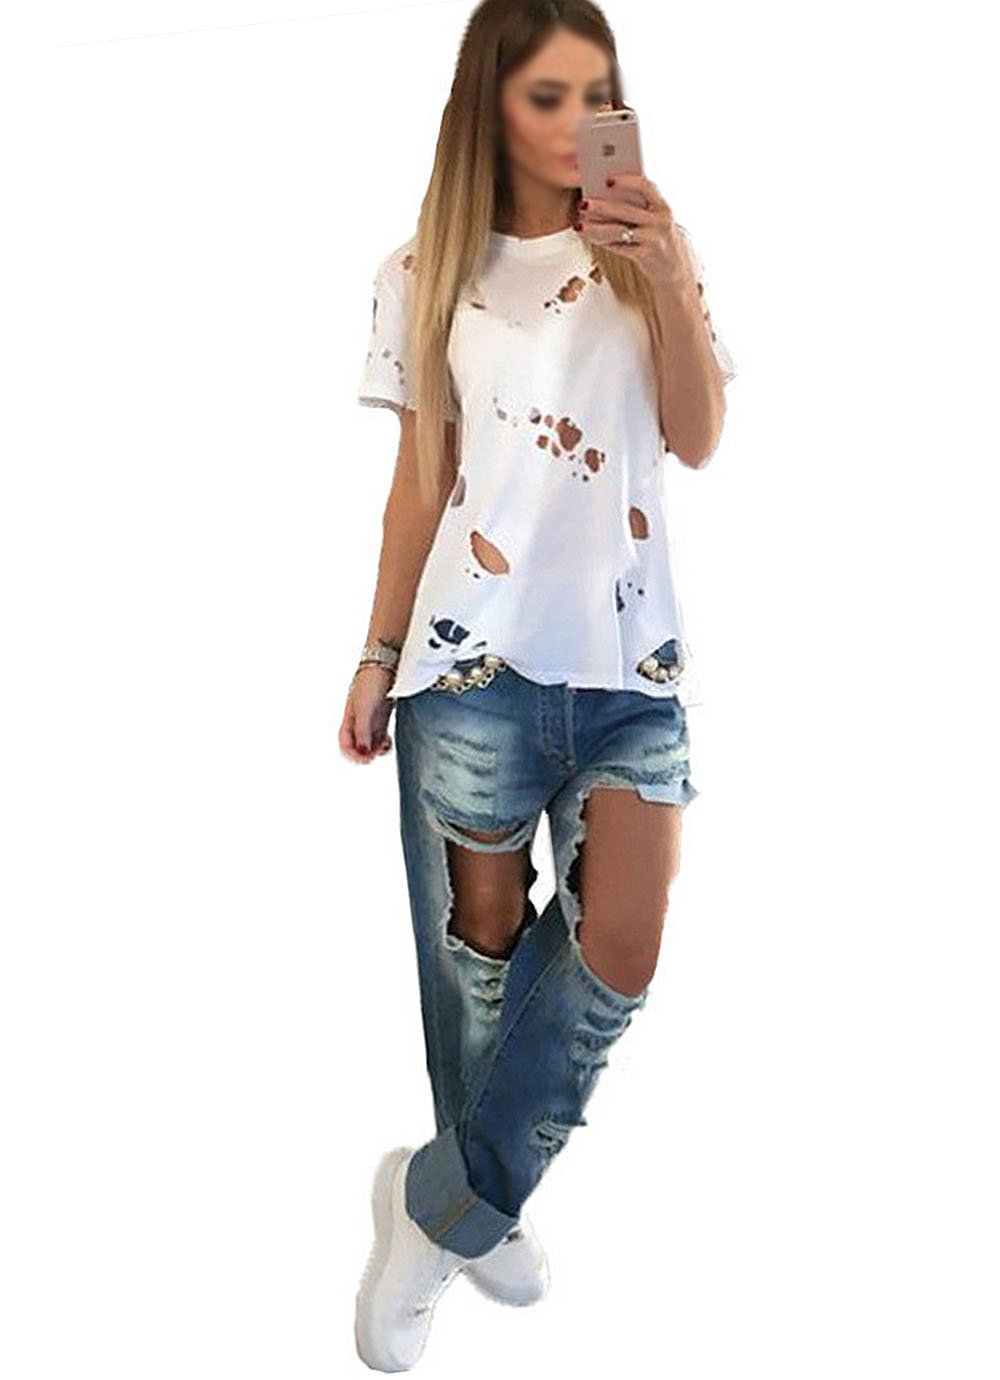 Women Fashion Holes Hollow Out CottonT-Shirt Shirt Casual O-Neck Short Sleeve Loose Shirts Tops Cover Ups White 2XL